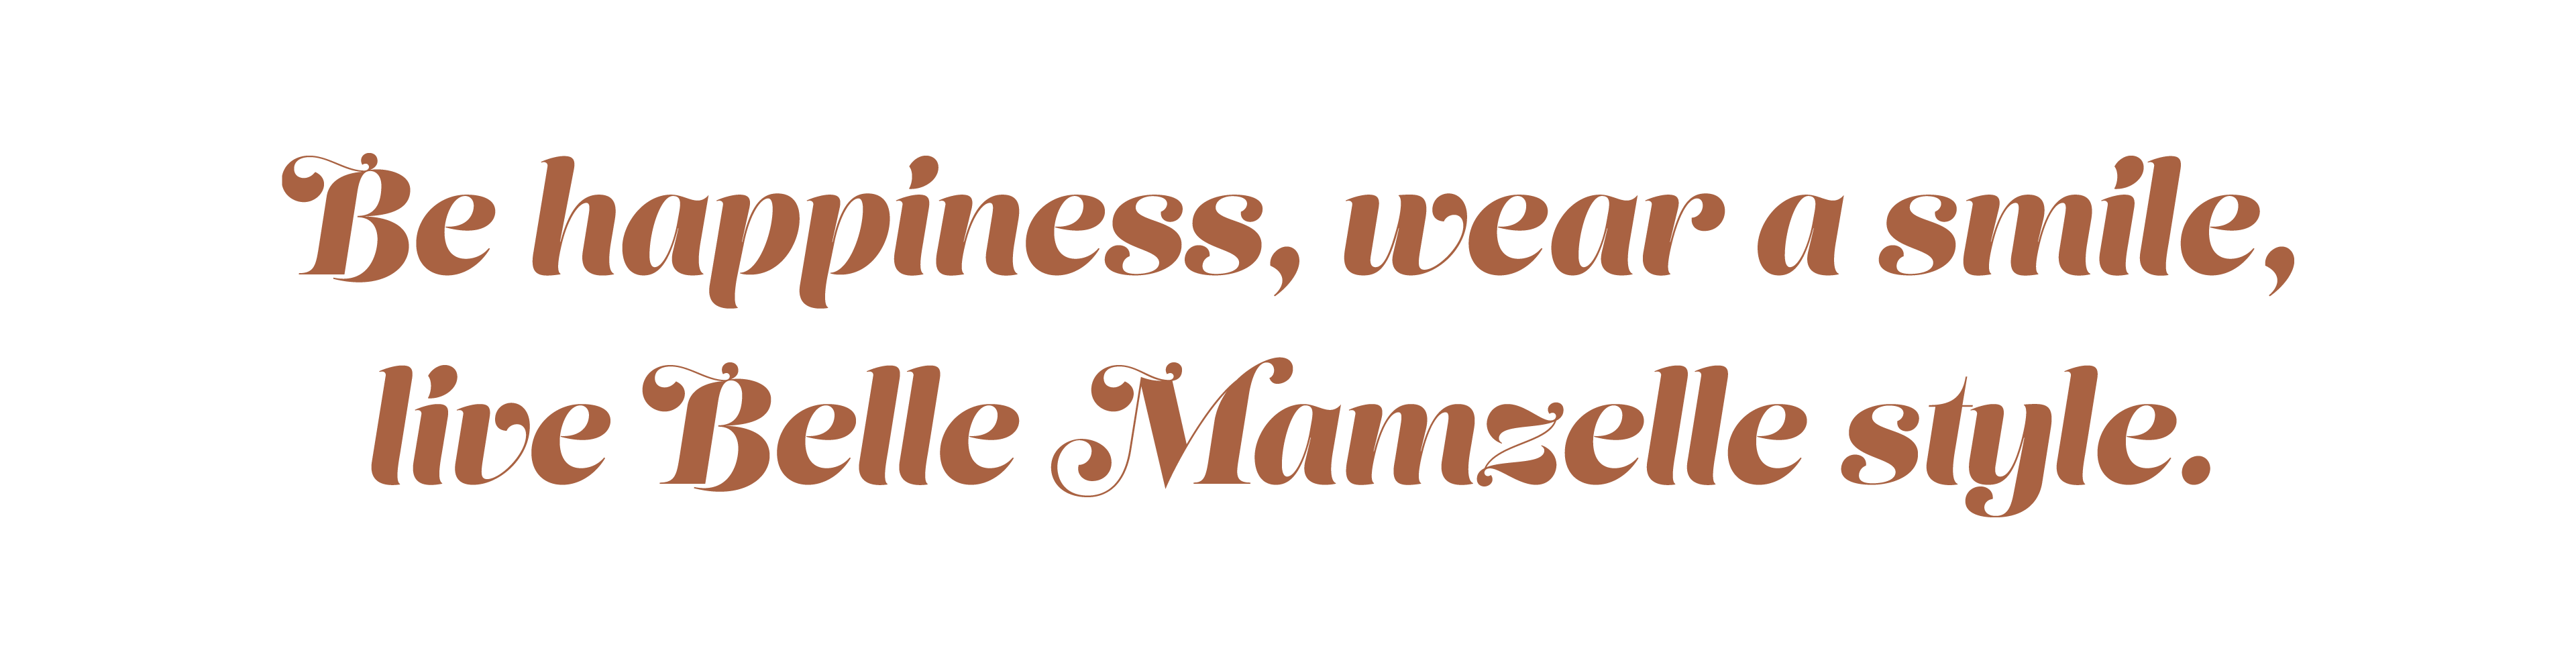 Be happiness, wear a smile, live Belle Mamzelle style